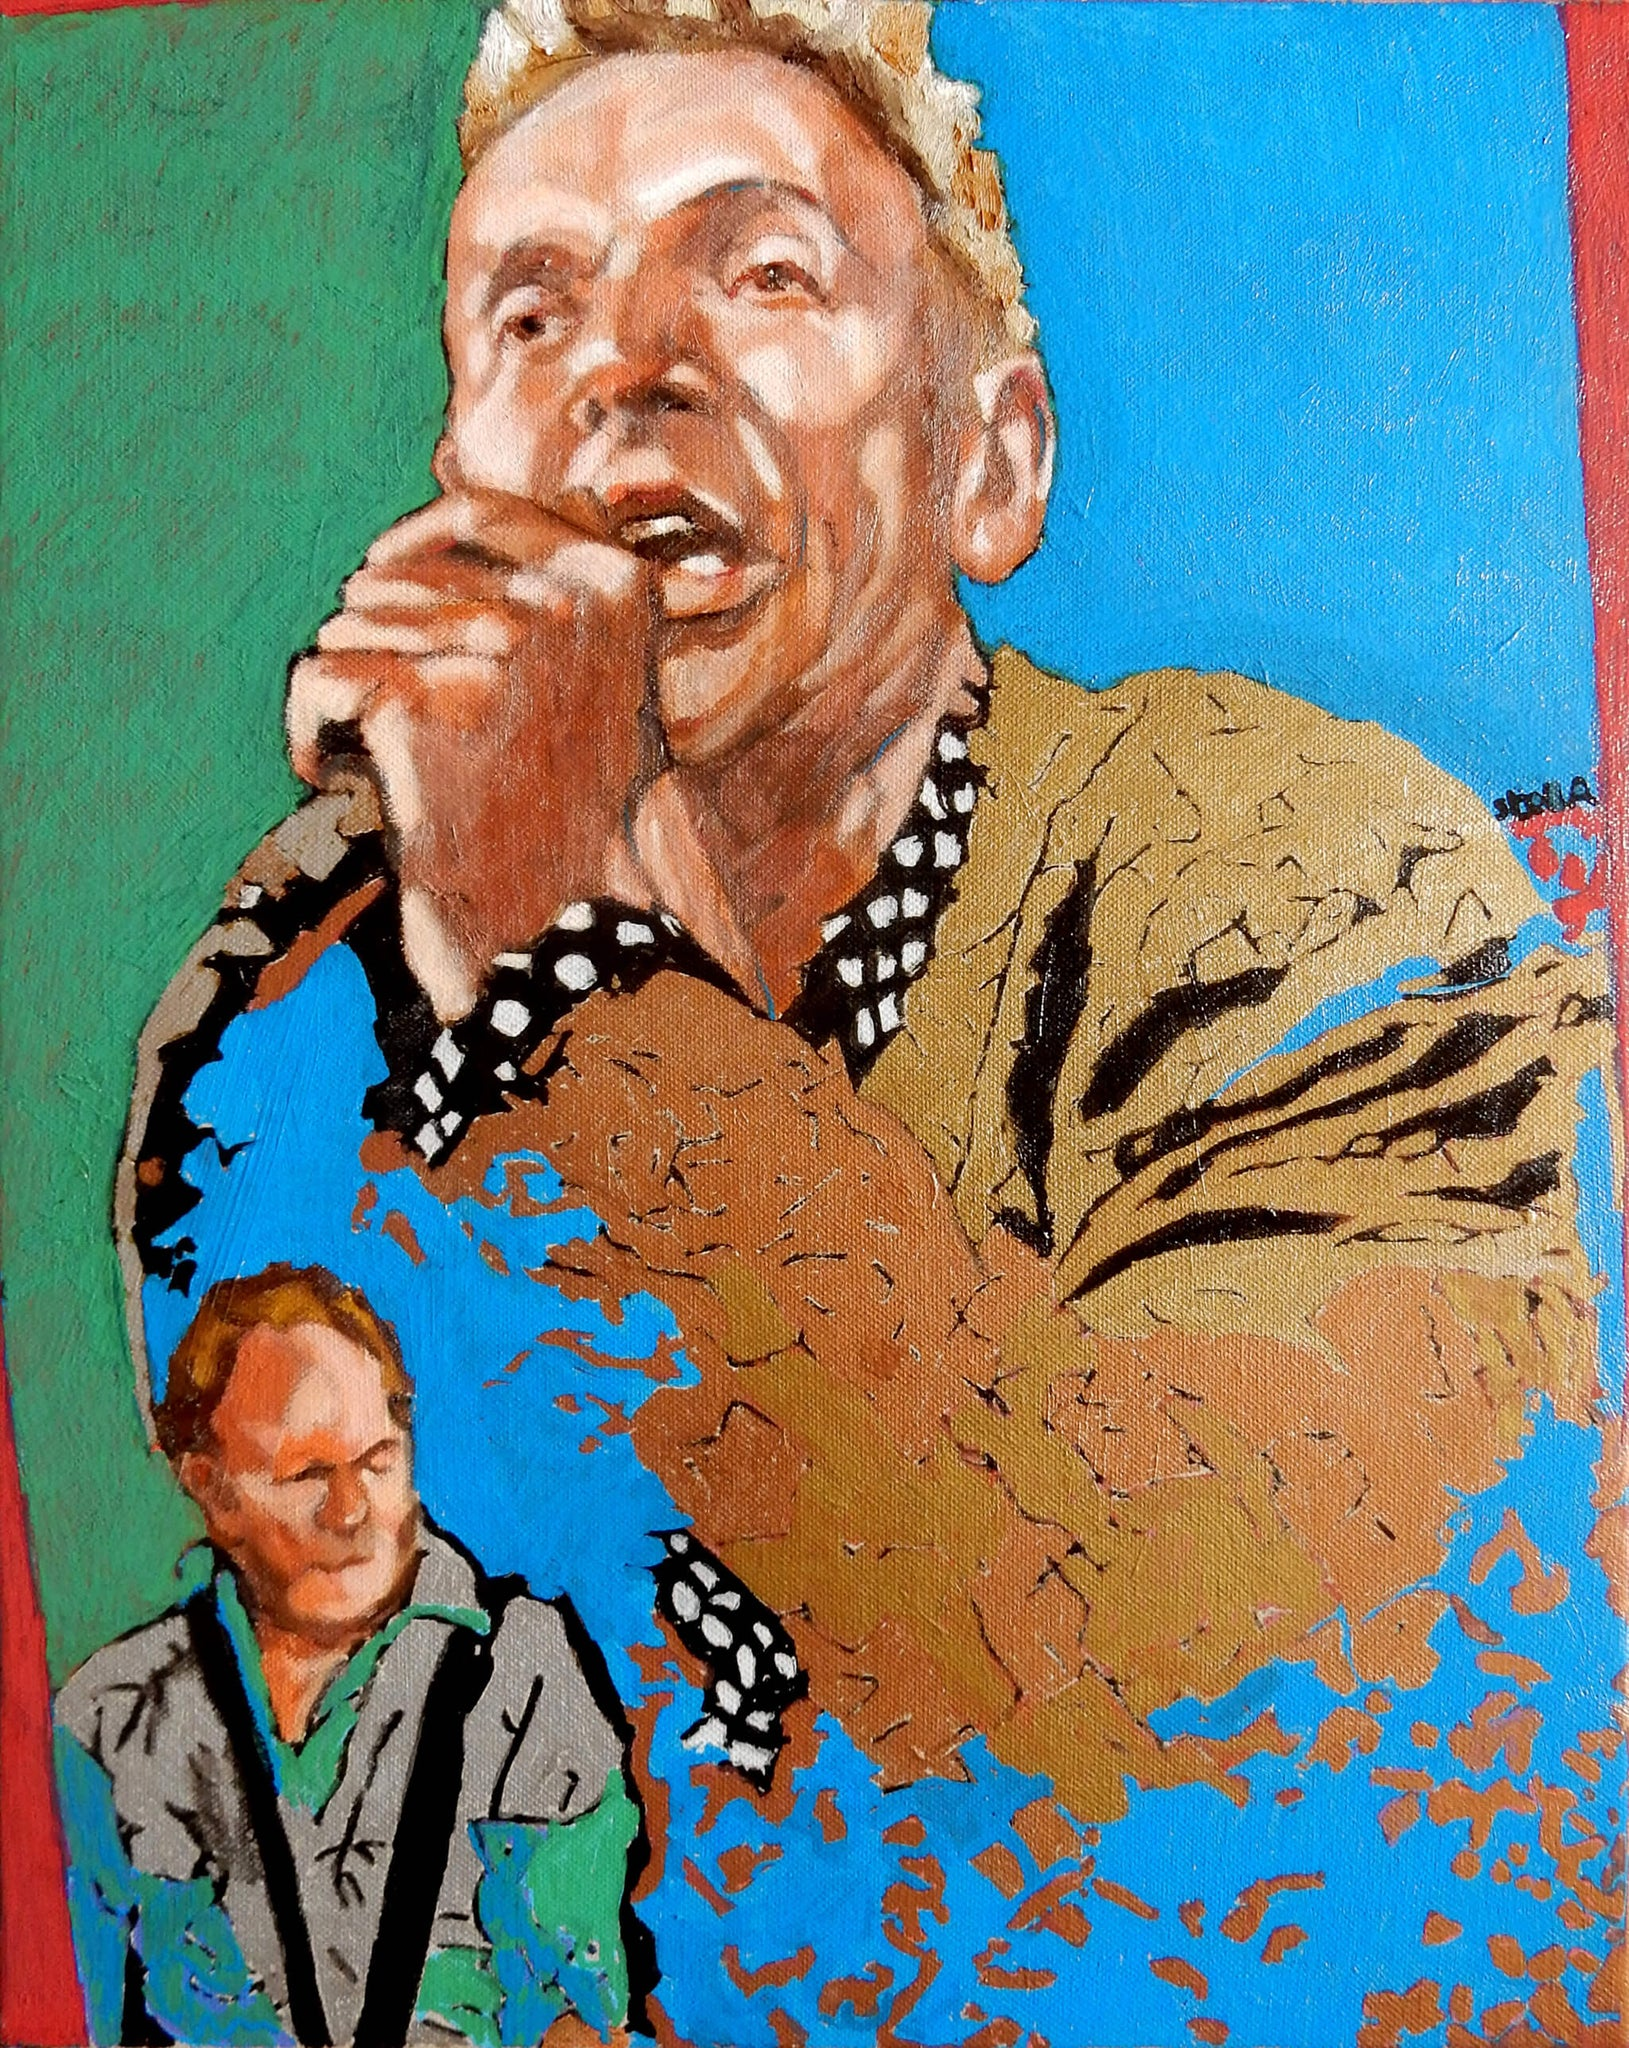 Robert Kane Dr Feelgood acrylics on canvas portrait artwork by Stella Tooth.